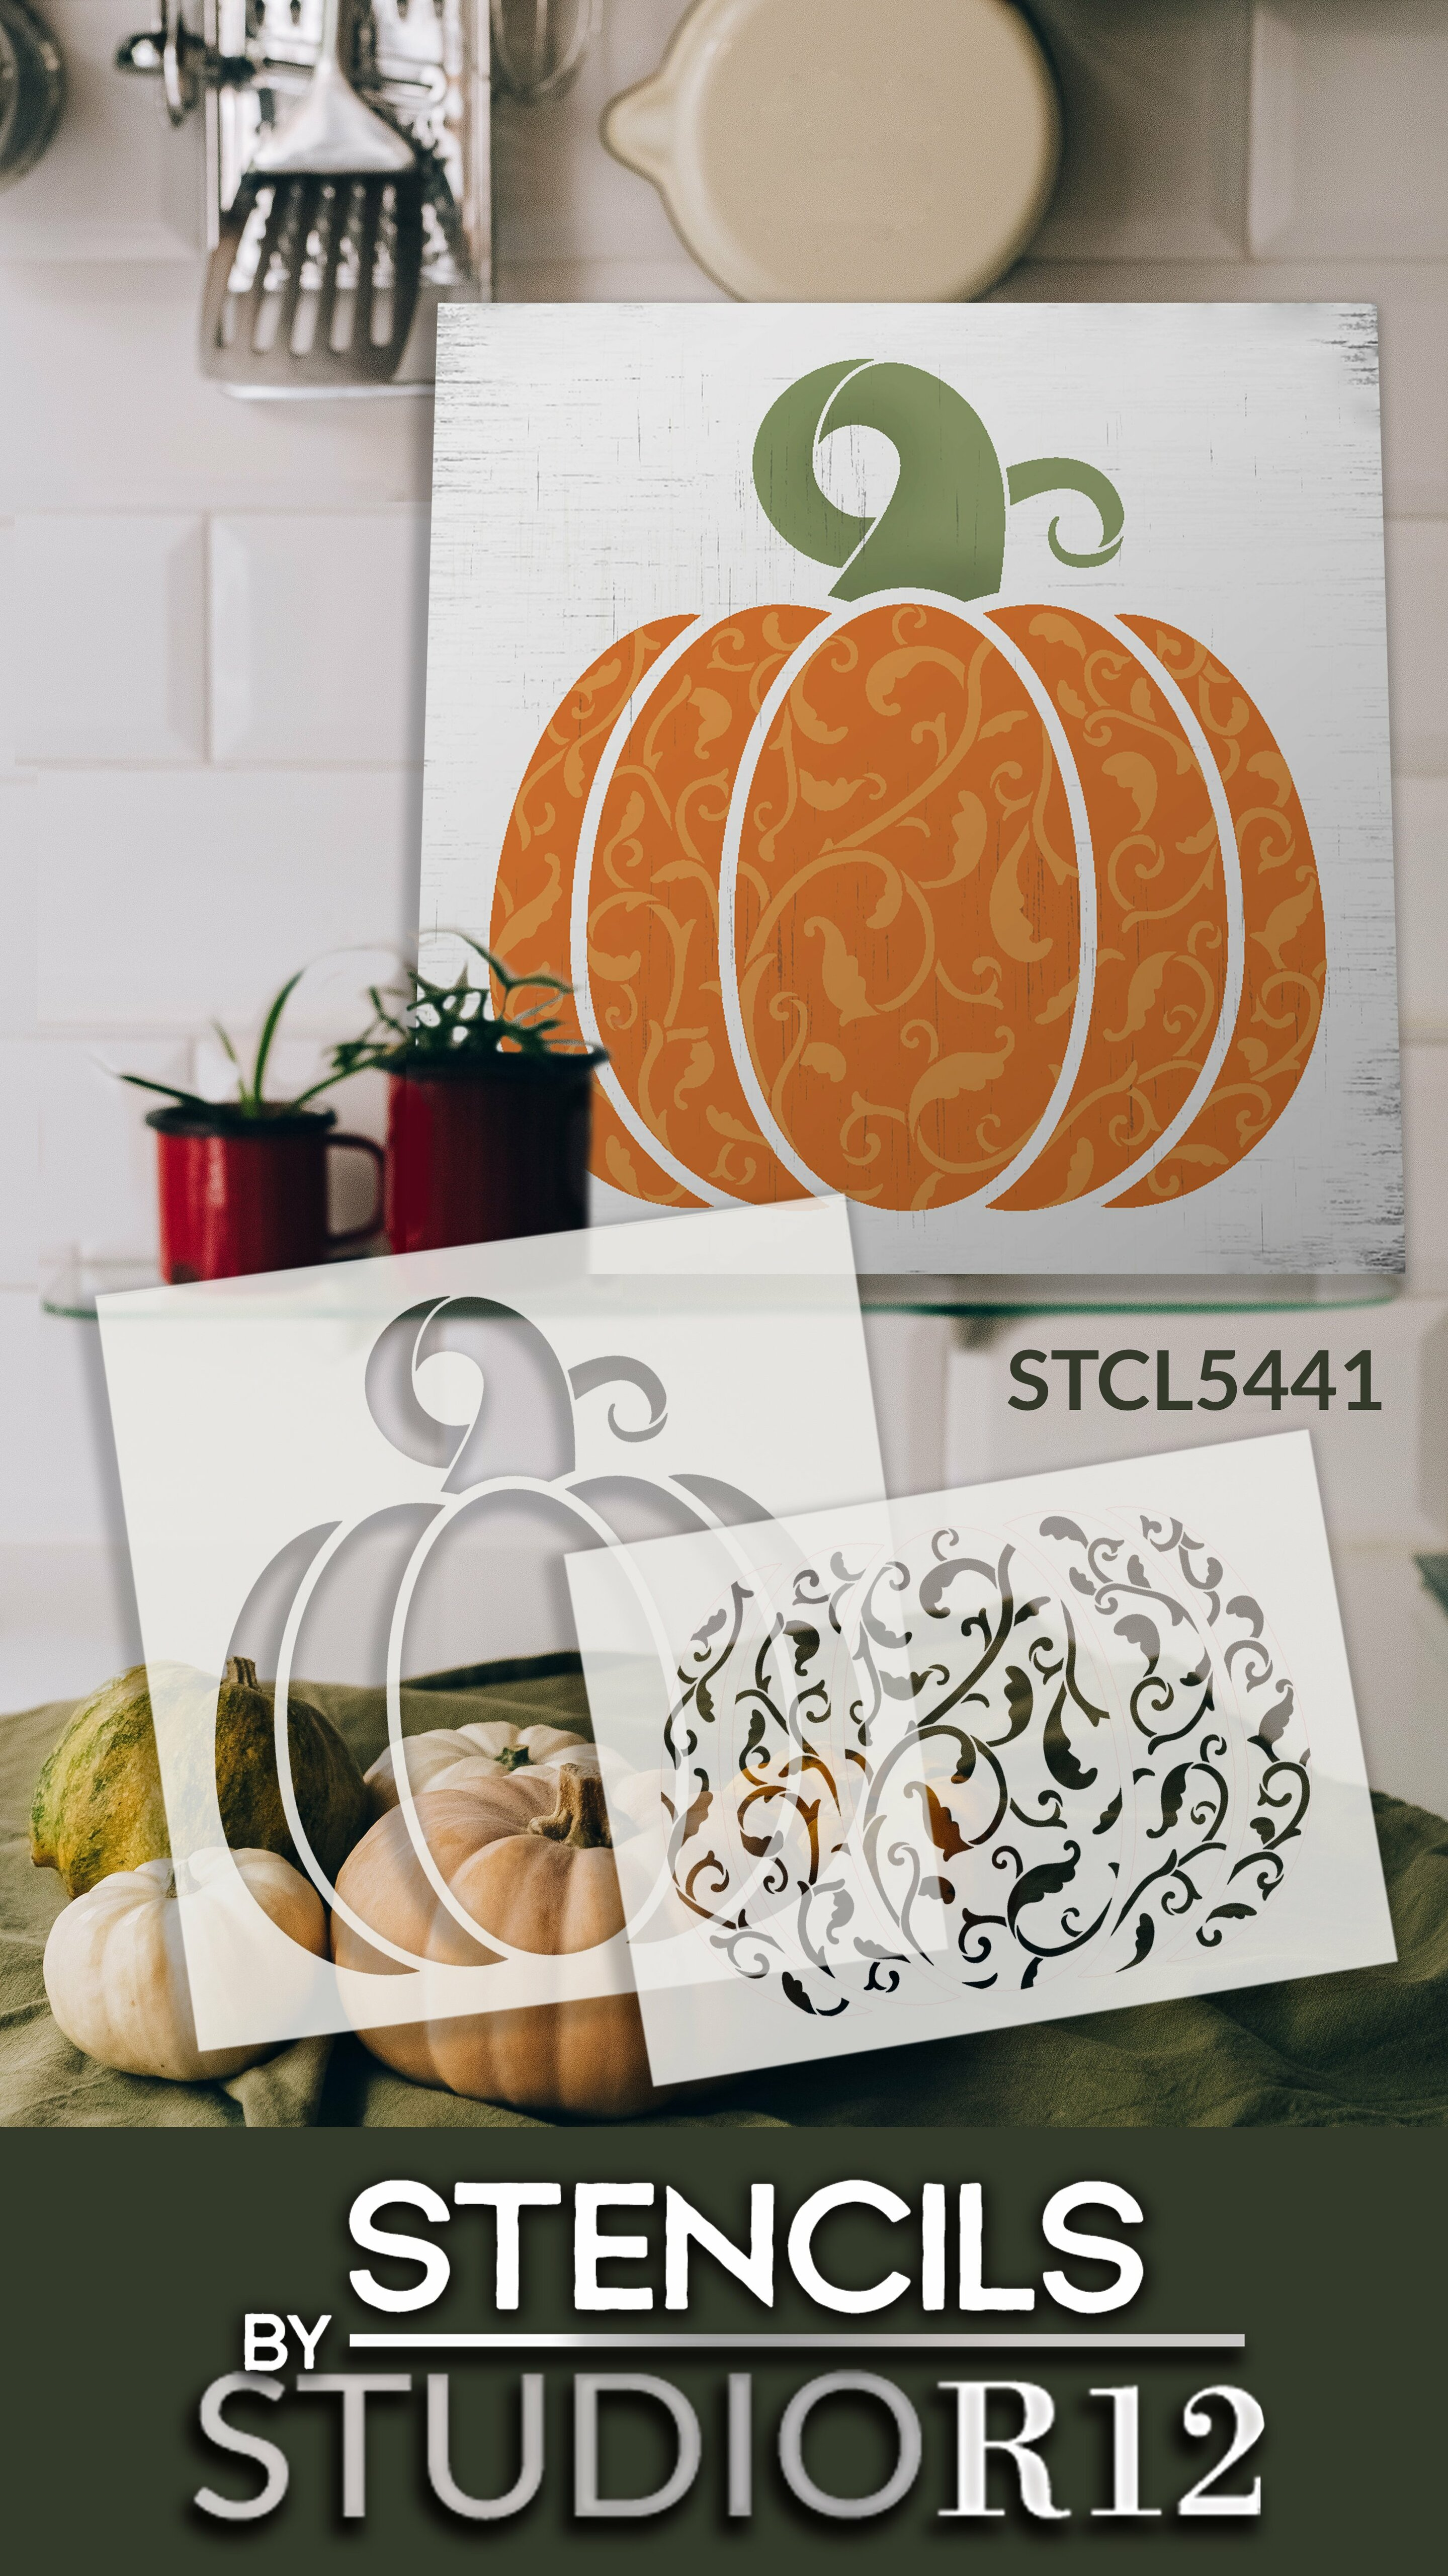 Victorian Vine Pumpkin 2 Part Stencil by StudioR12   DIY Fall Home & Kitchen Decor   Craft & Paint Wood Signs for Autumn   Size 14 x 14 inches